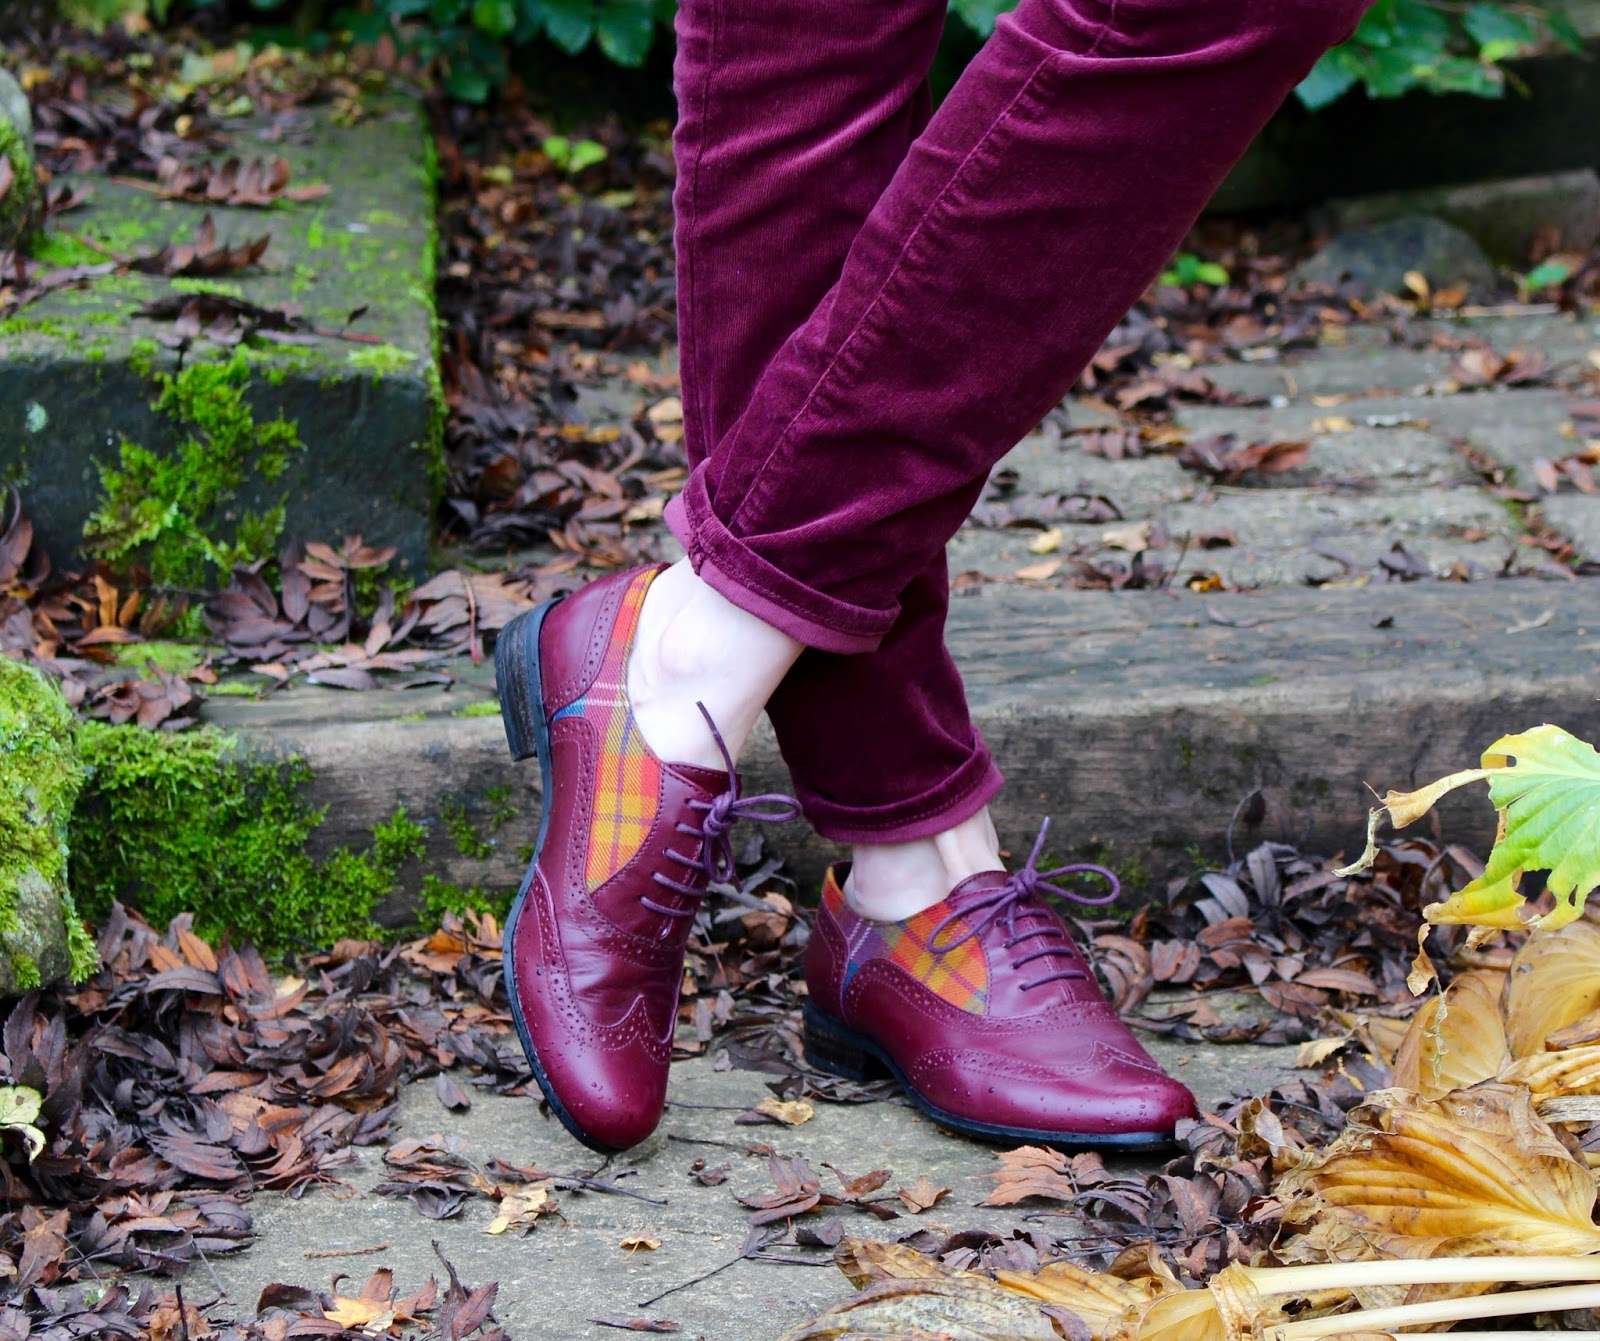 Oxblood leather brogues with a tartan trim.